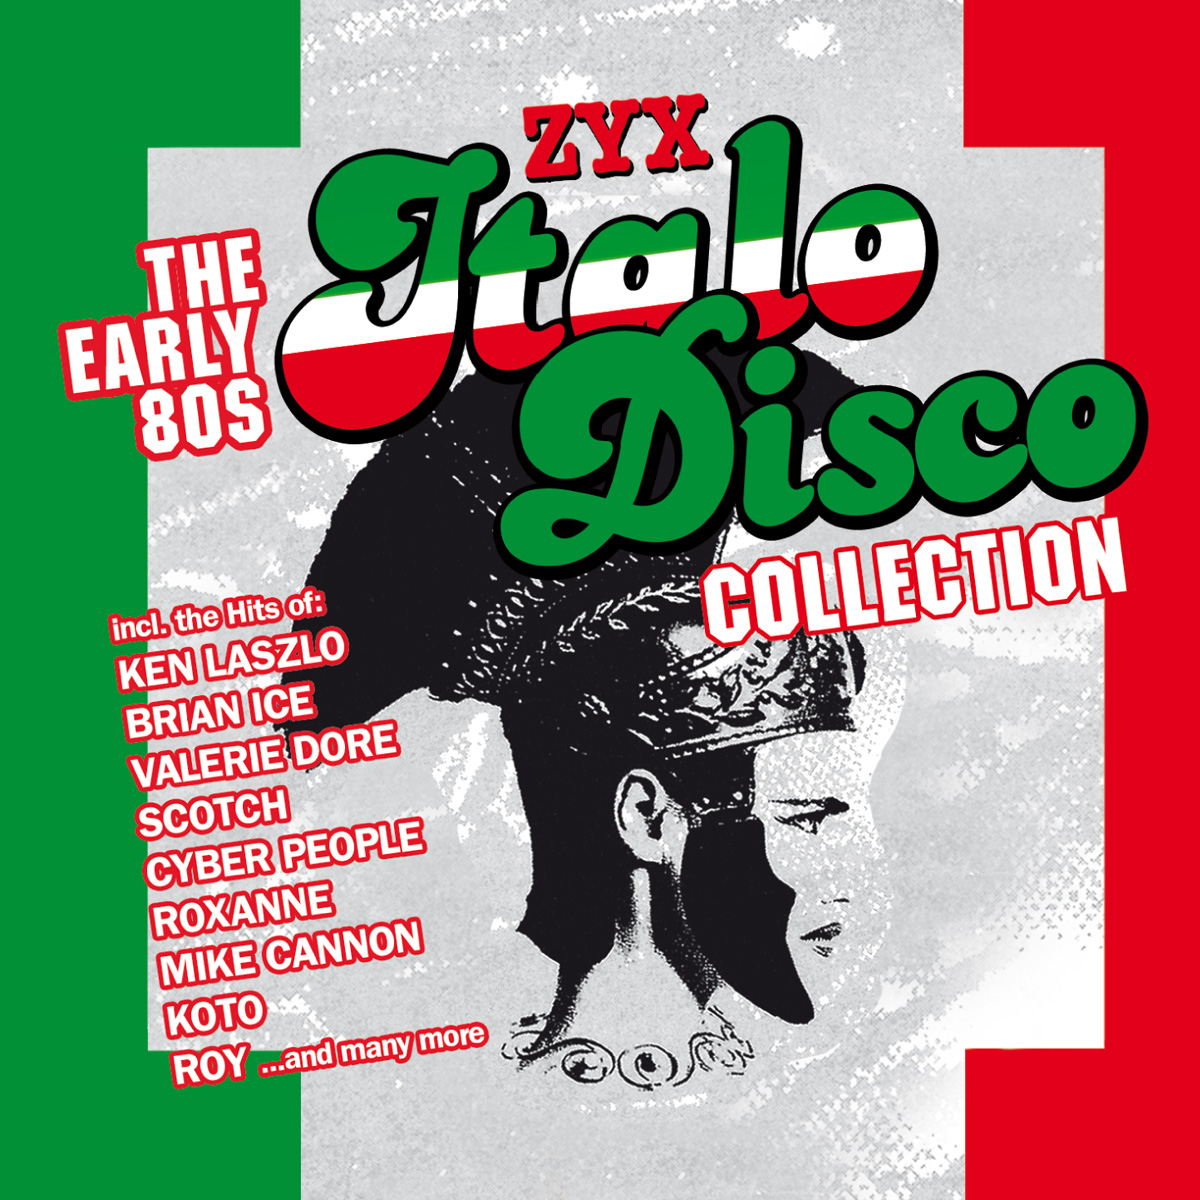 Details about CD Zyx Italo Disco Collection the Early 80s by Various  Artists 3 Cds